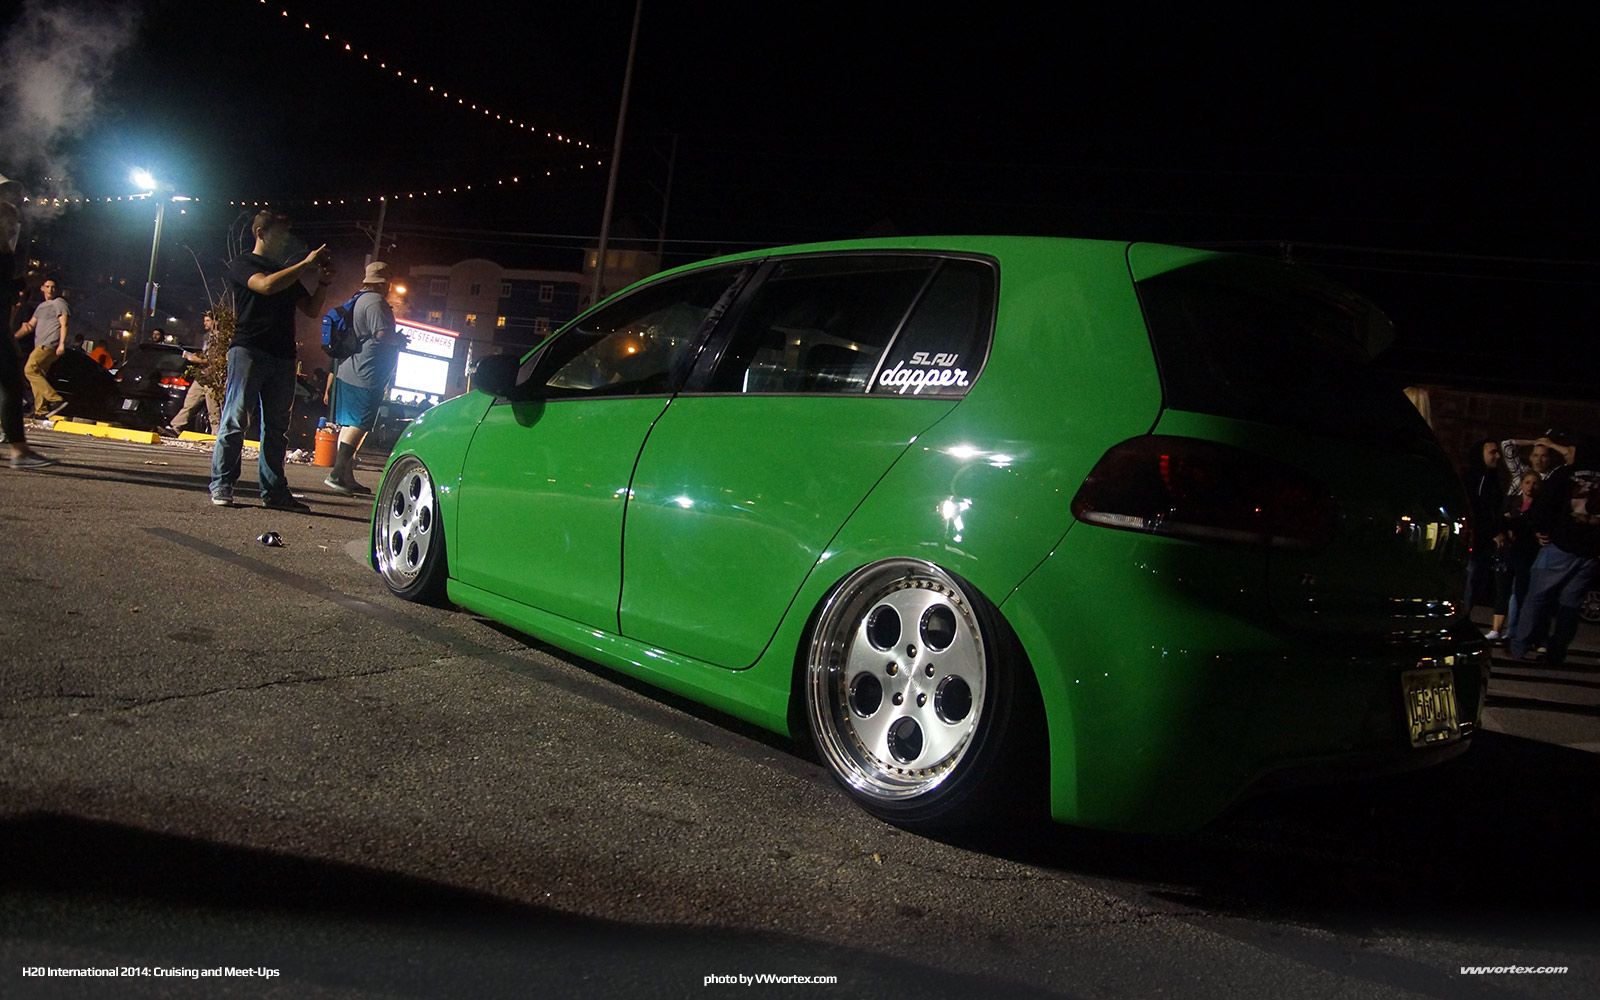 62 Blocks Of Chaos Is This The End Of H2oi As We Know It Vwvortex